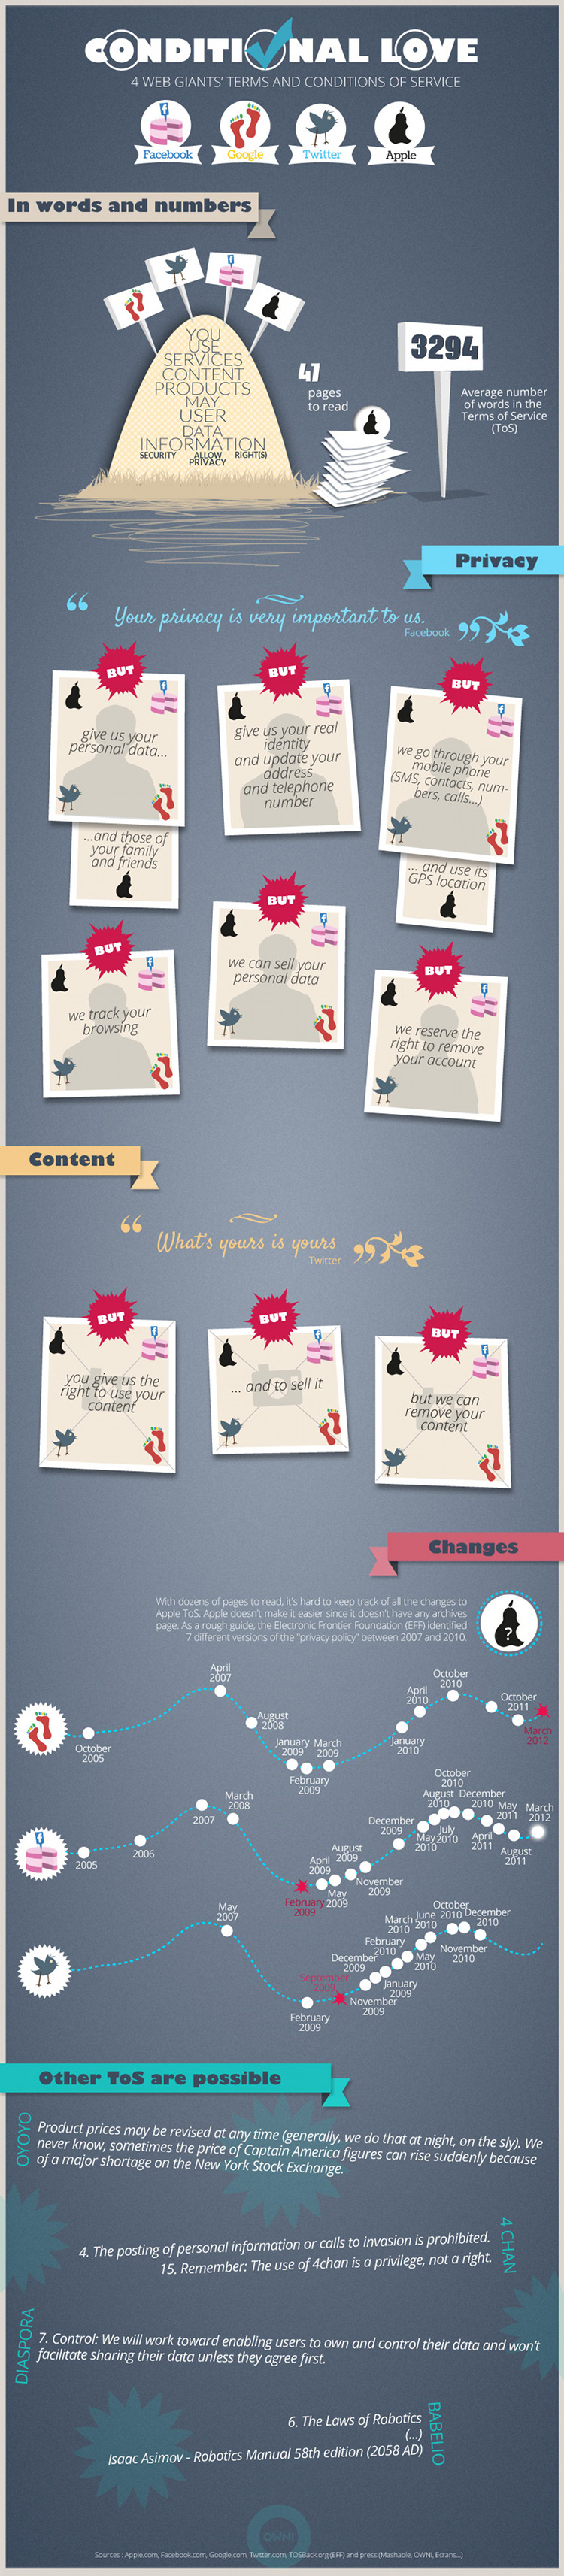 (INFOGRAPHIC) CONDITIONAL LOVE